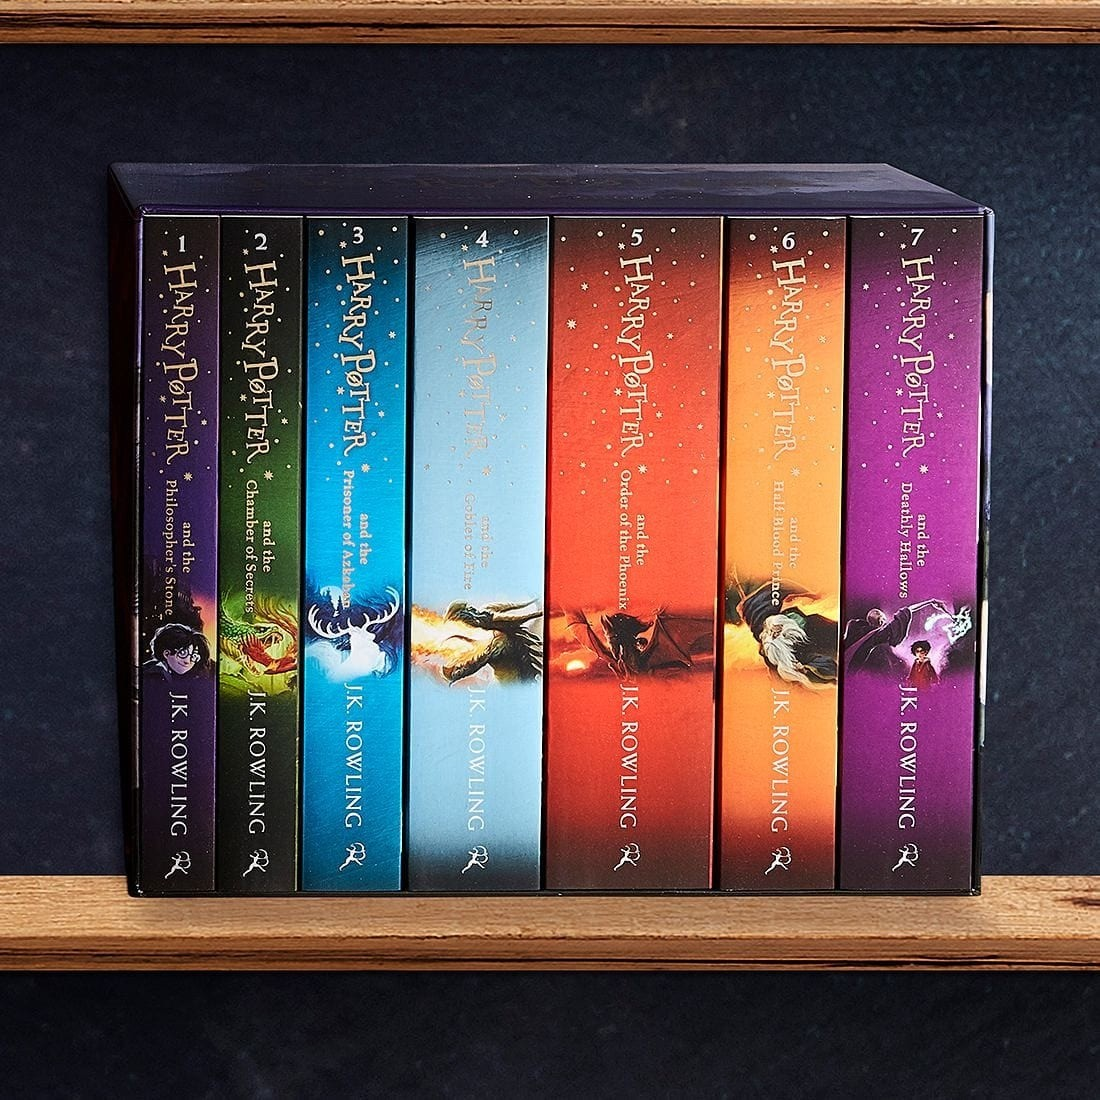 HARRY POTTER THE COMPLETE COLLECTION (7 BOOKS SET)